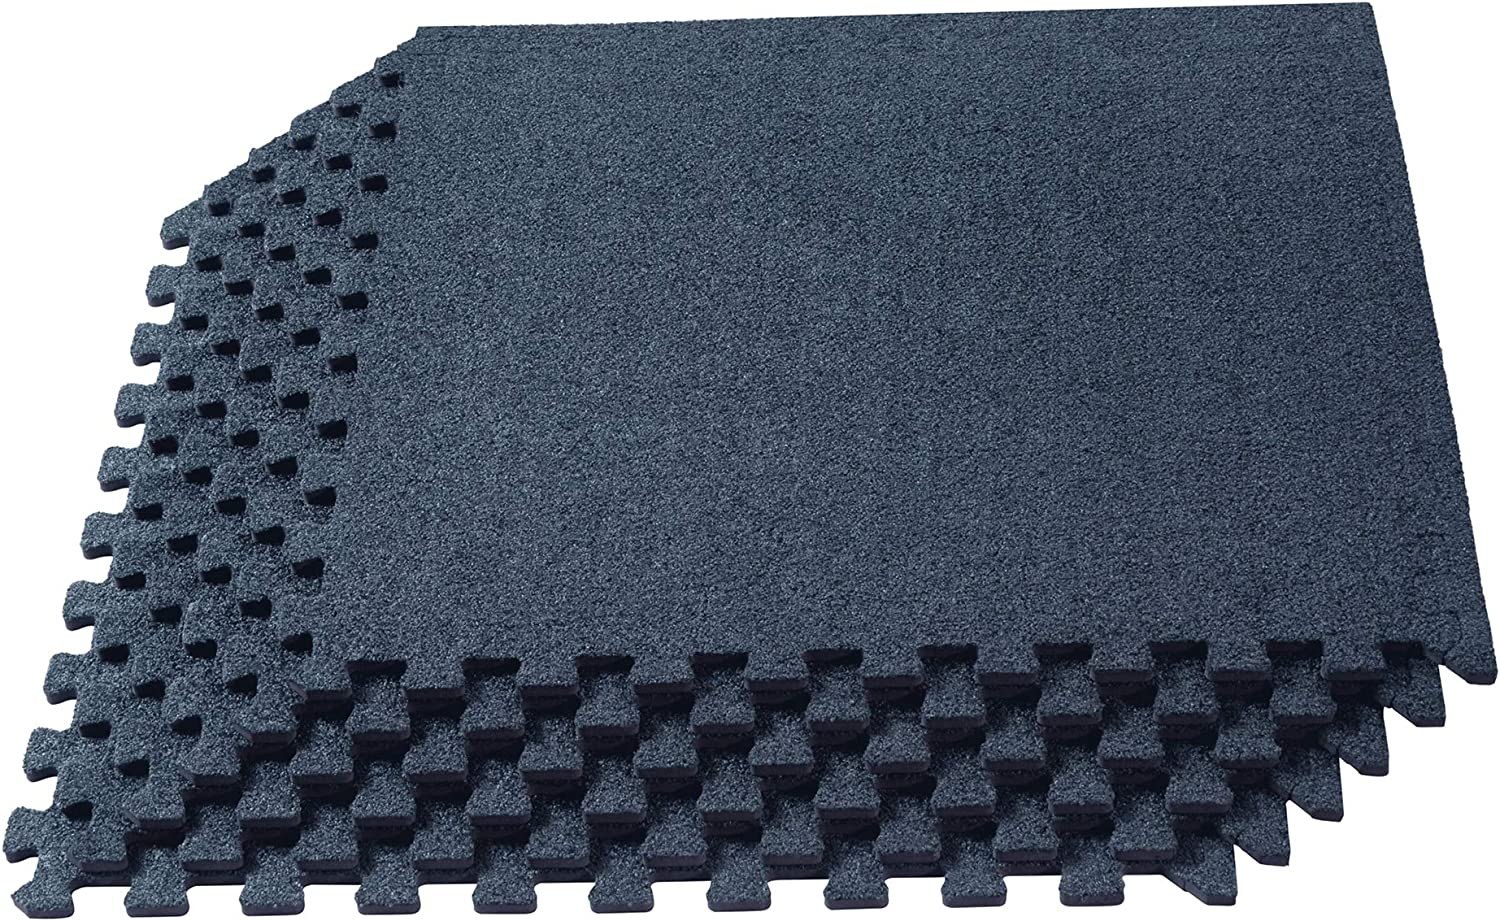 We Sell Mats 3/8 Inch Thick Interlocking Foam Carpet Tiles, Durable Carpet Squares, Anti-Fatigue Support for Home, Office, or Classroom Use, 24 in x 24 in